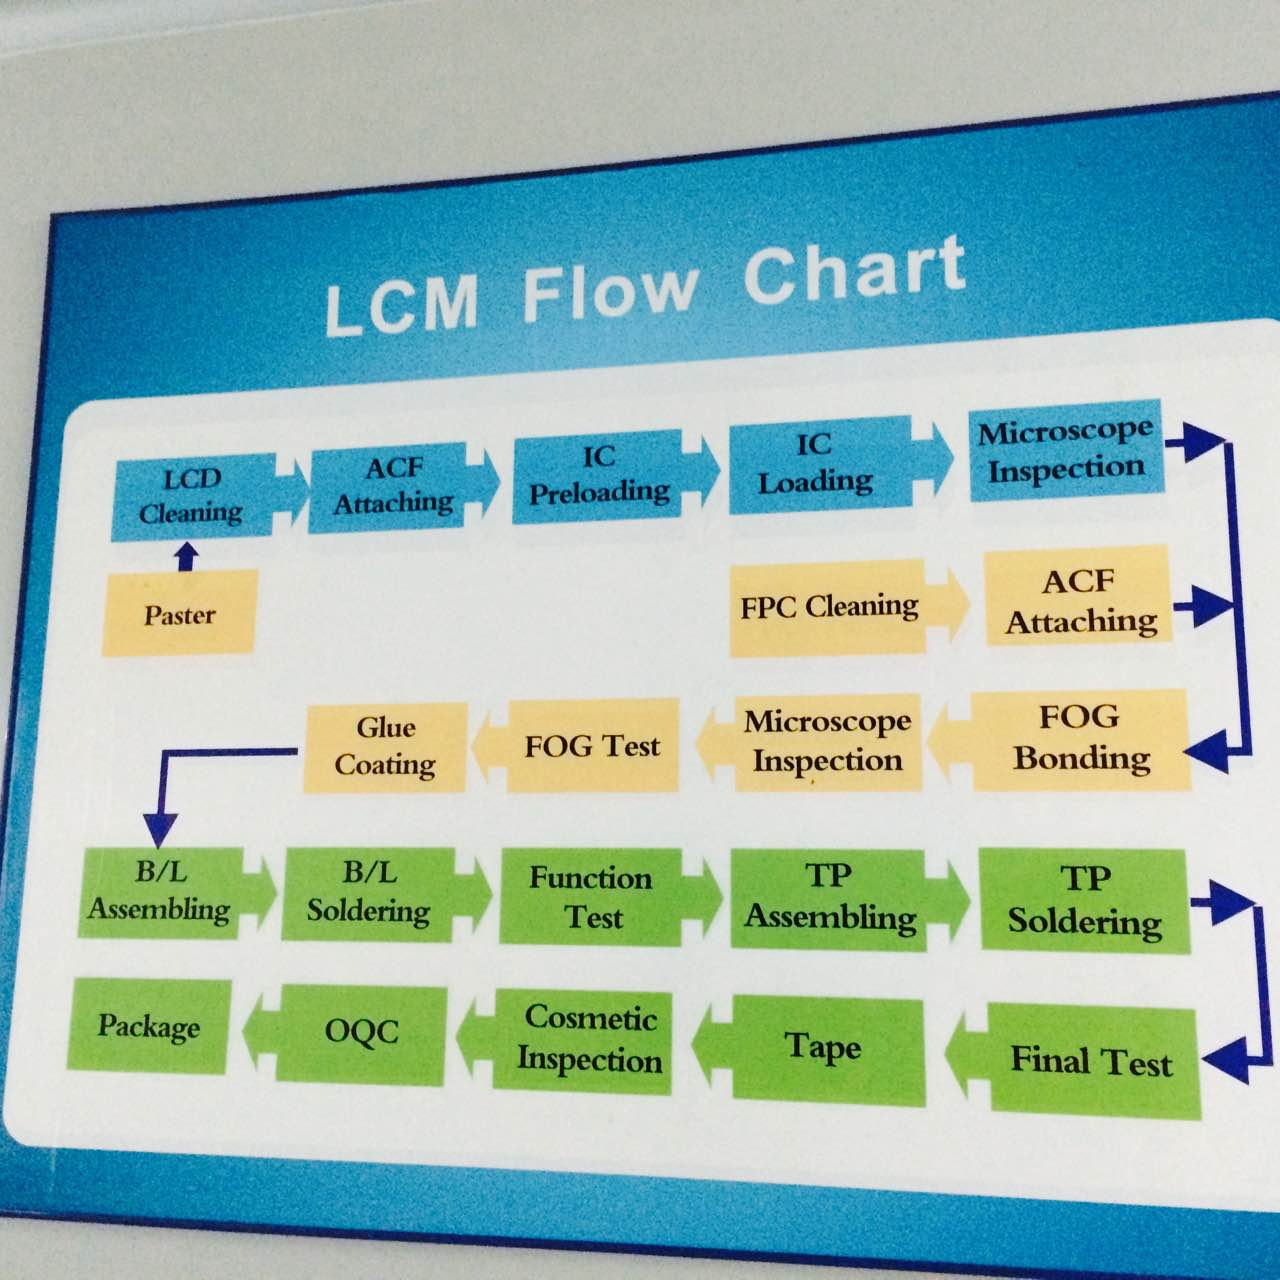 LCM FLOW CHART